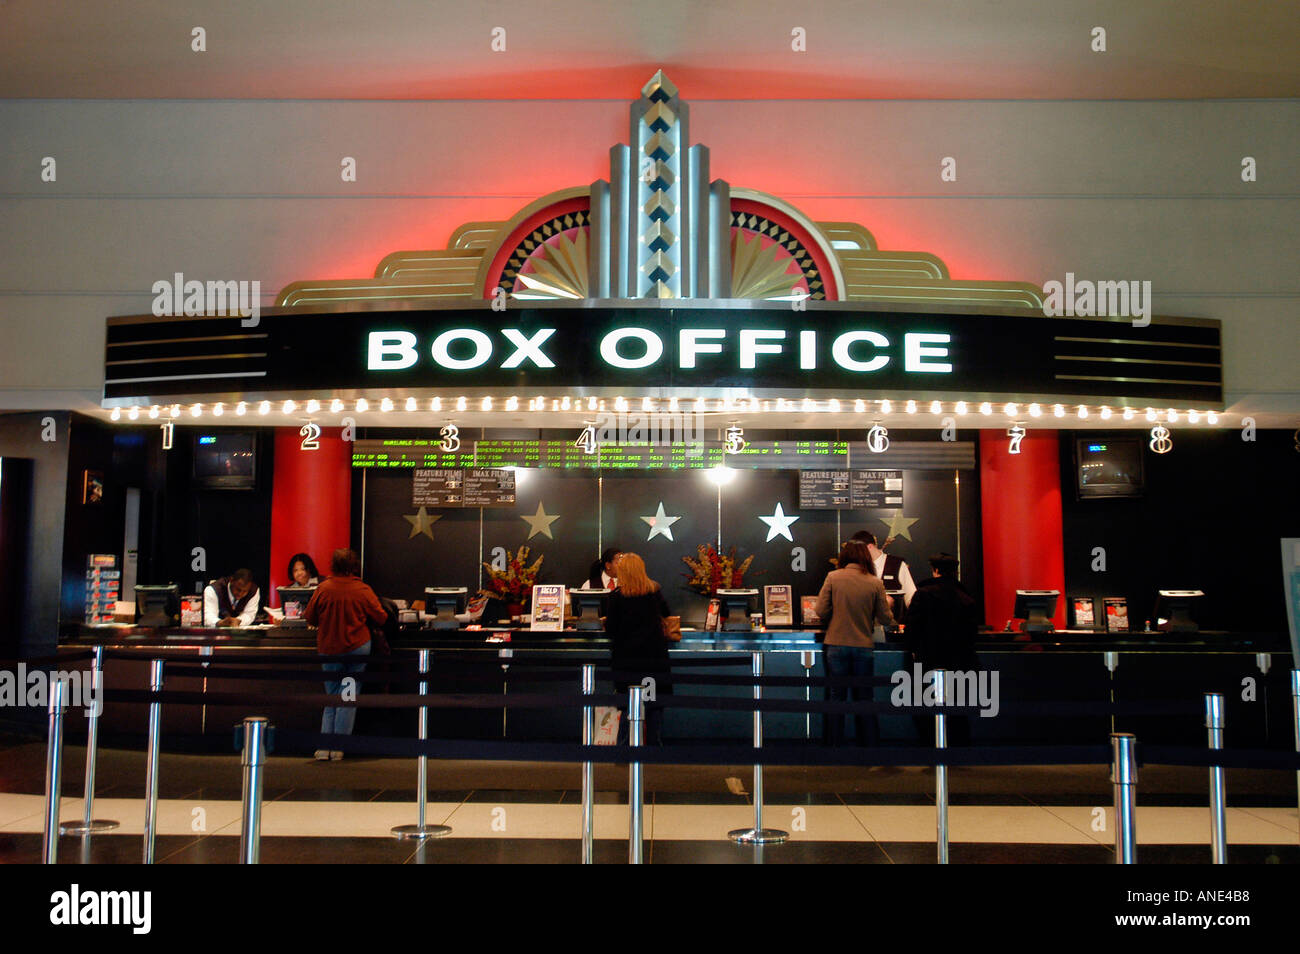 Art deco box office of the loew s lincoln square movie theater stock photo royalty free image - Classement film box office ...